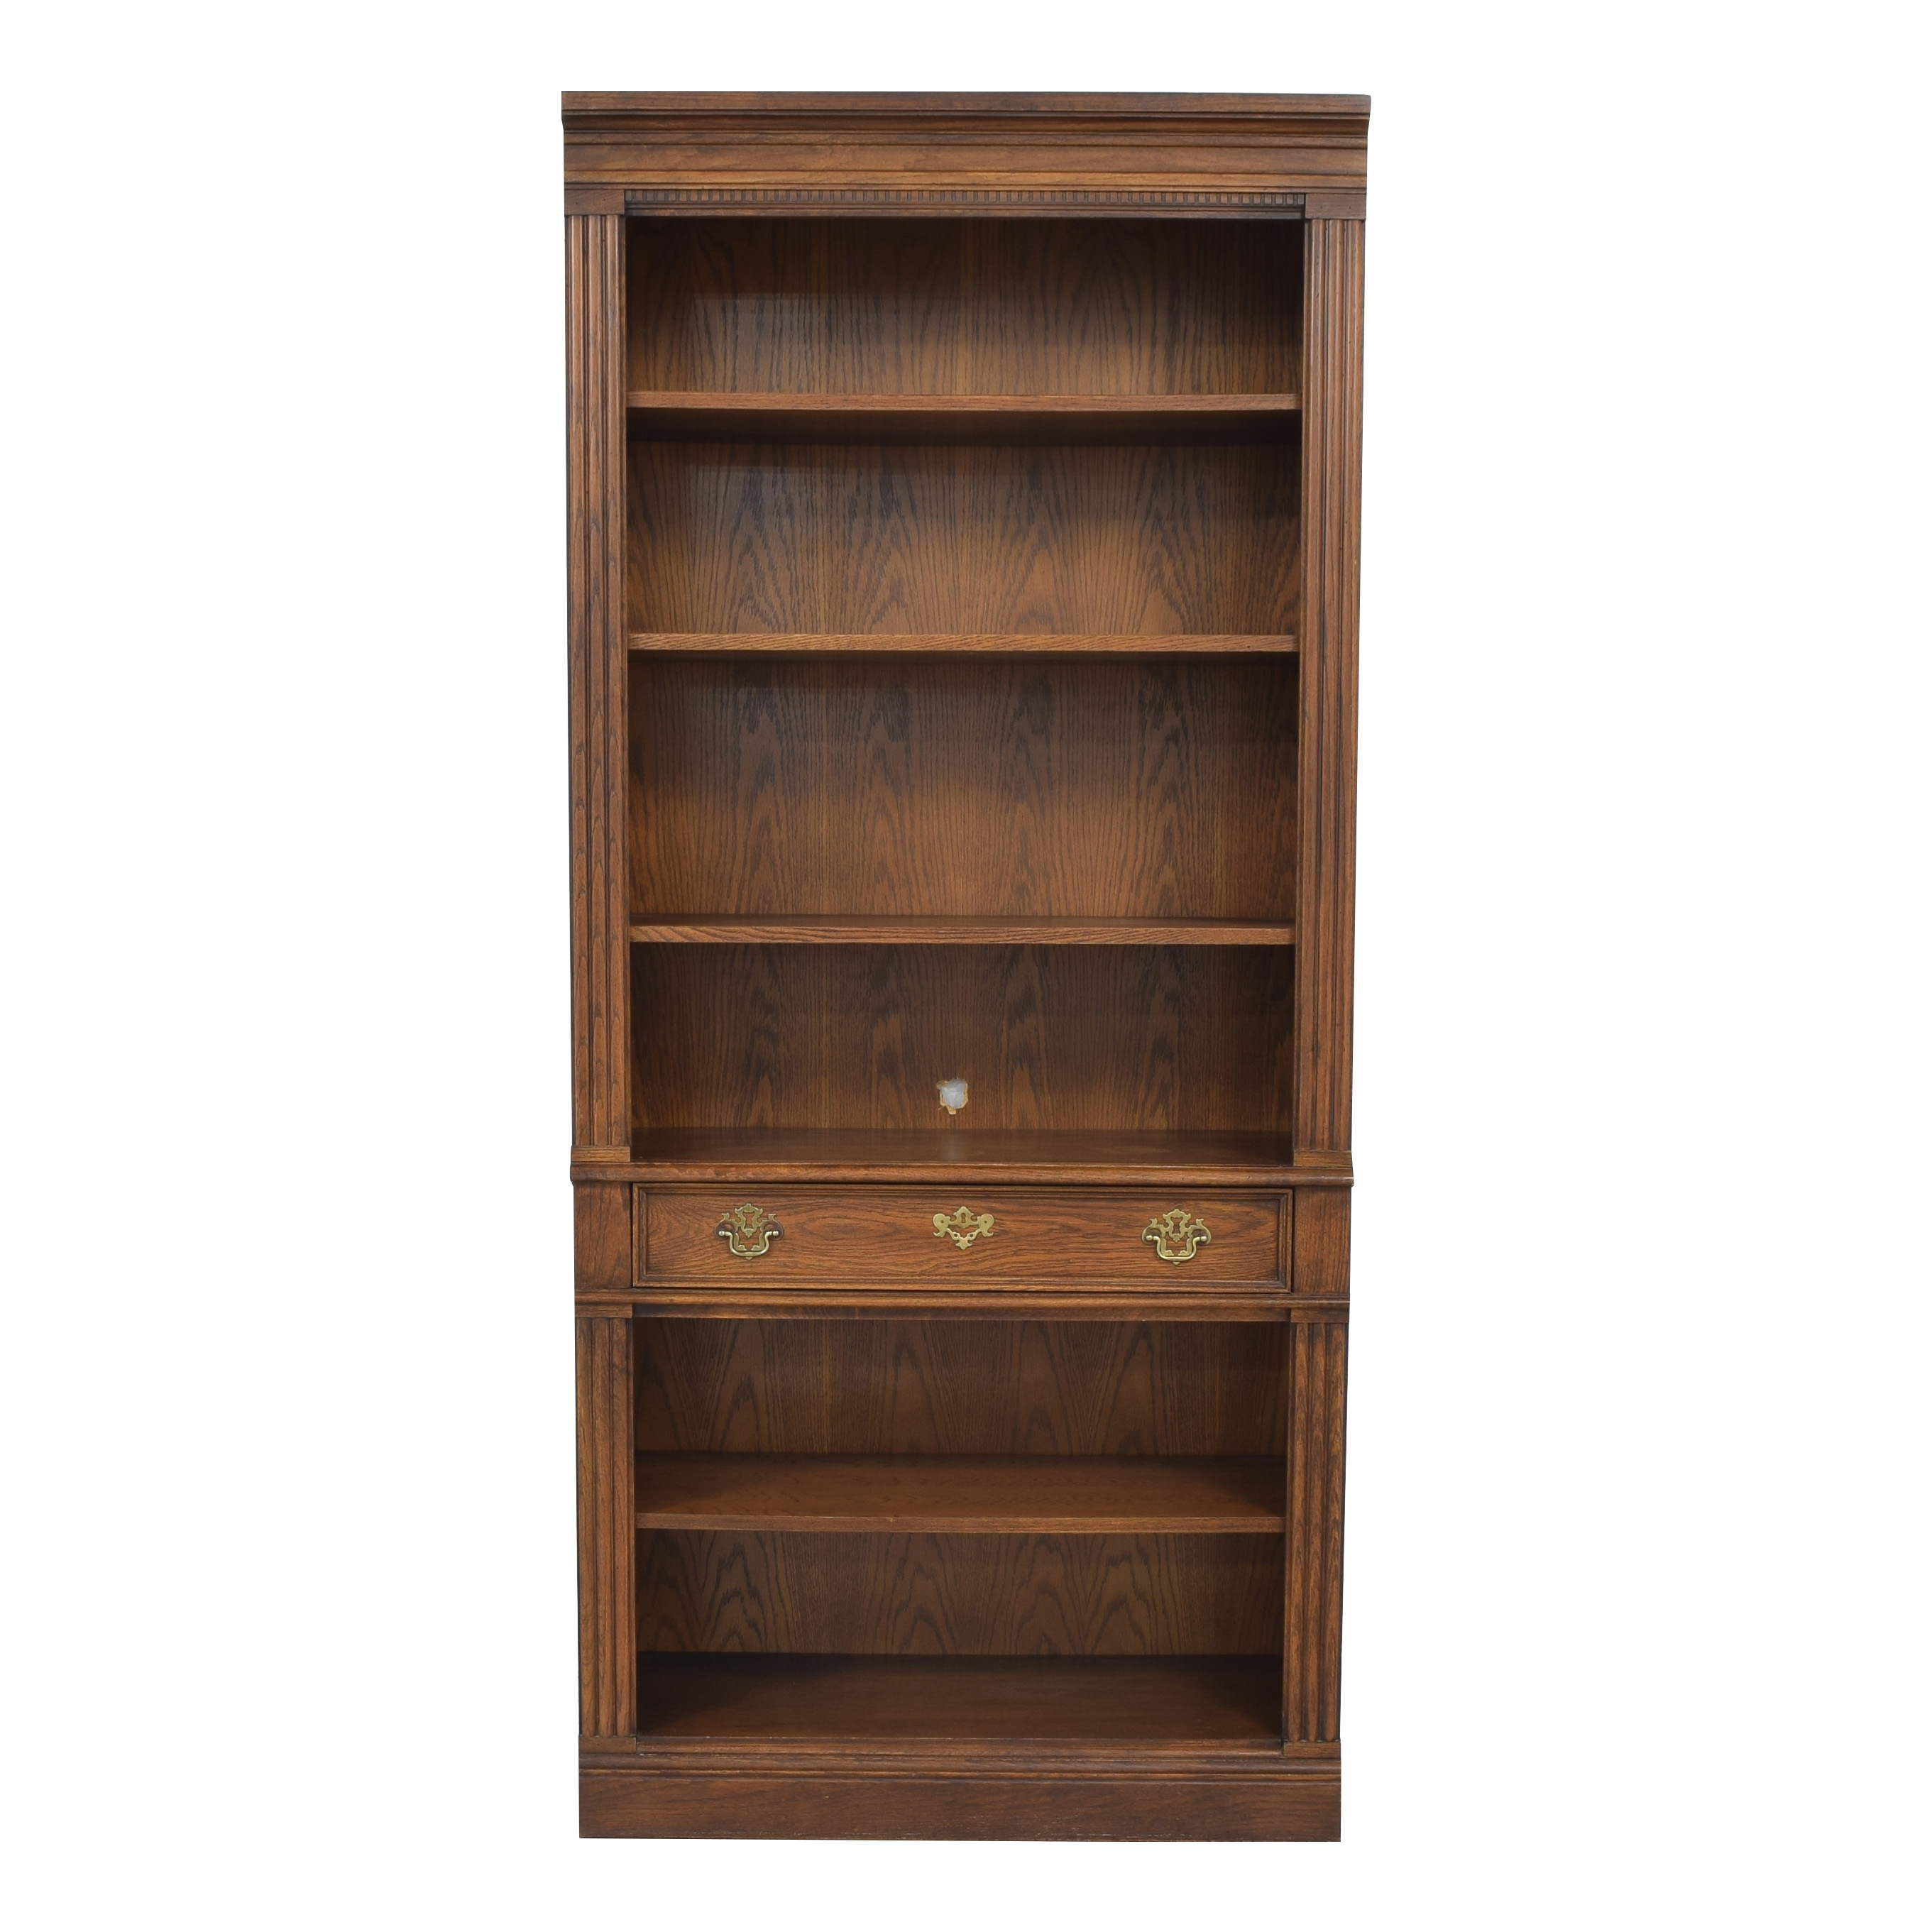 Thomasville Thomasville Bookself with Drawer on sale